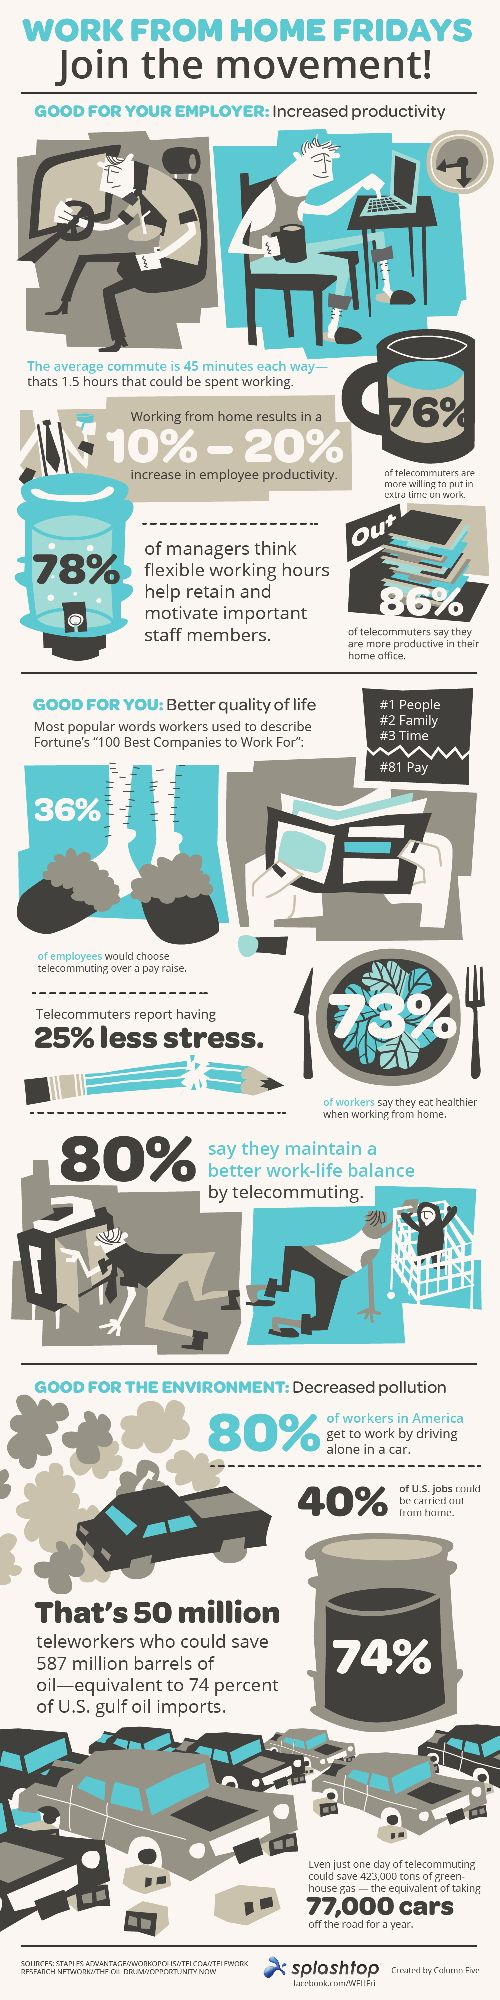 Work From Home Fridays – Infographic on http://www.bestinfographic.co.uk: Ideas, Benefits Of, Infografia Infographic, Benefit, Friday Movement, To Work, Work At Home, Friday Infographic, Design